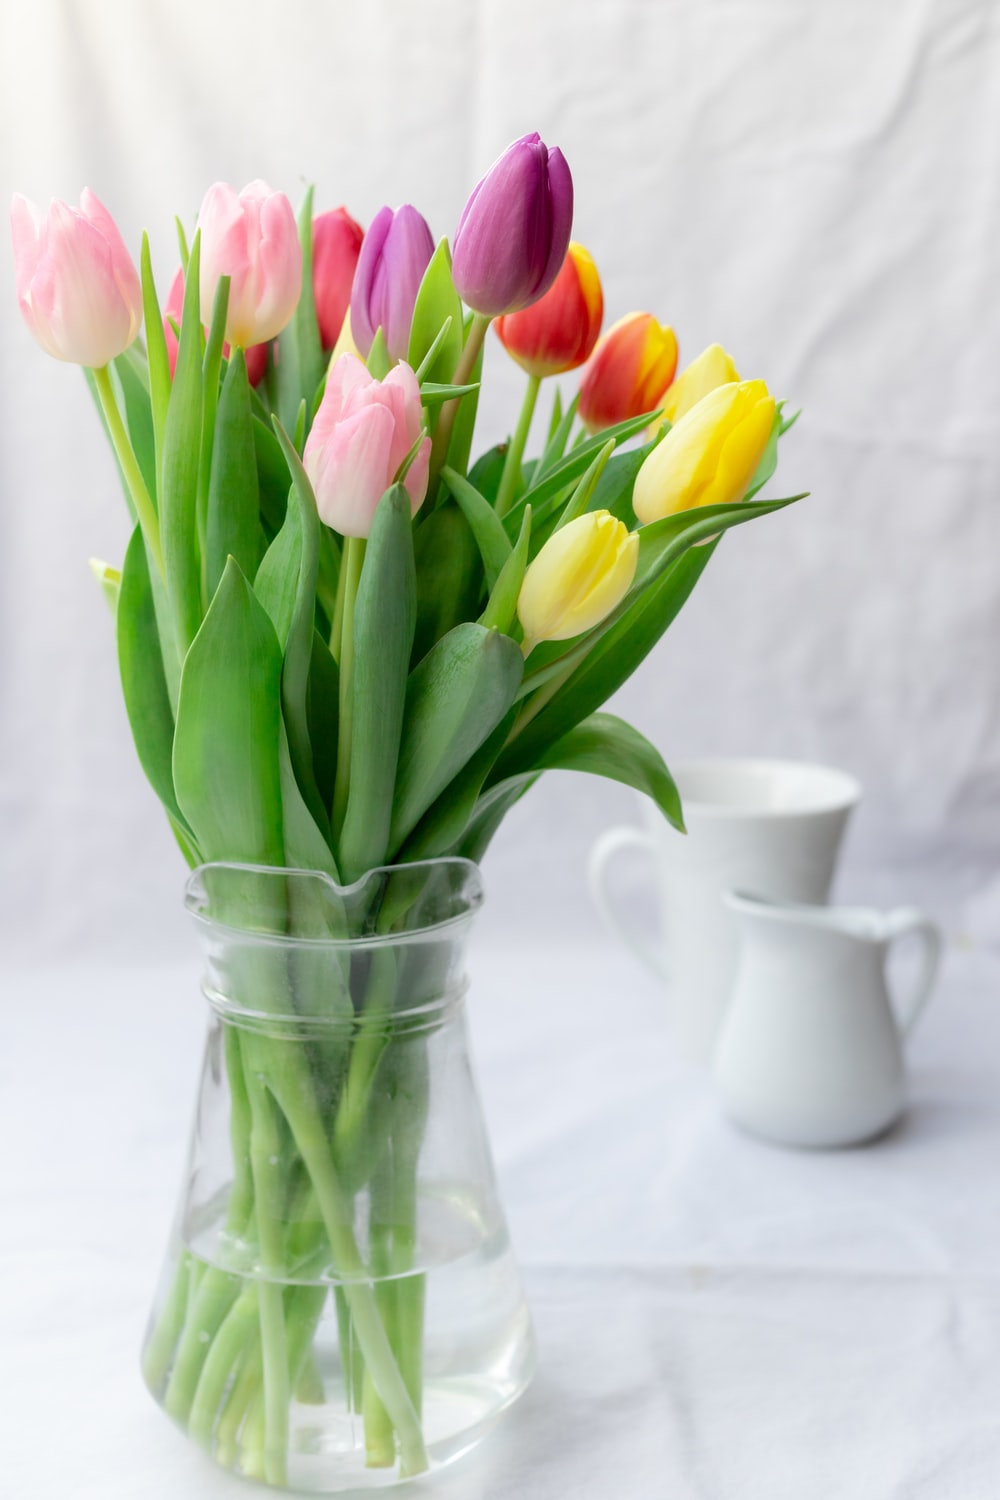 pink and yellow tulips in clear glass vase